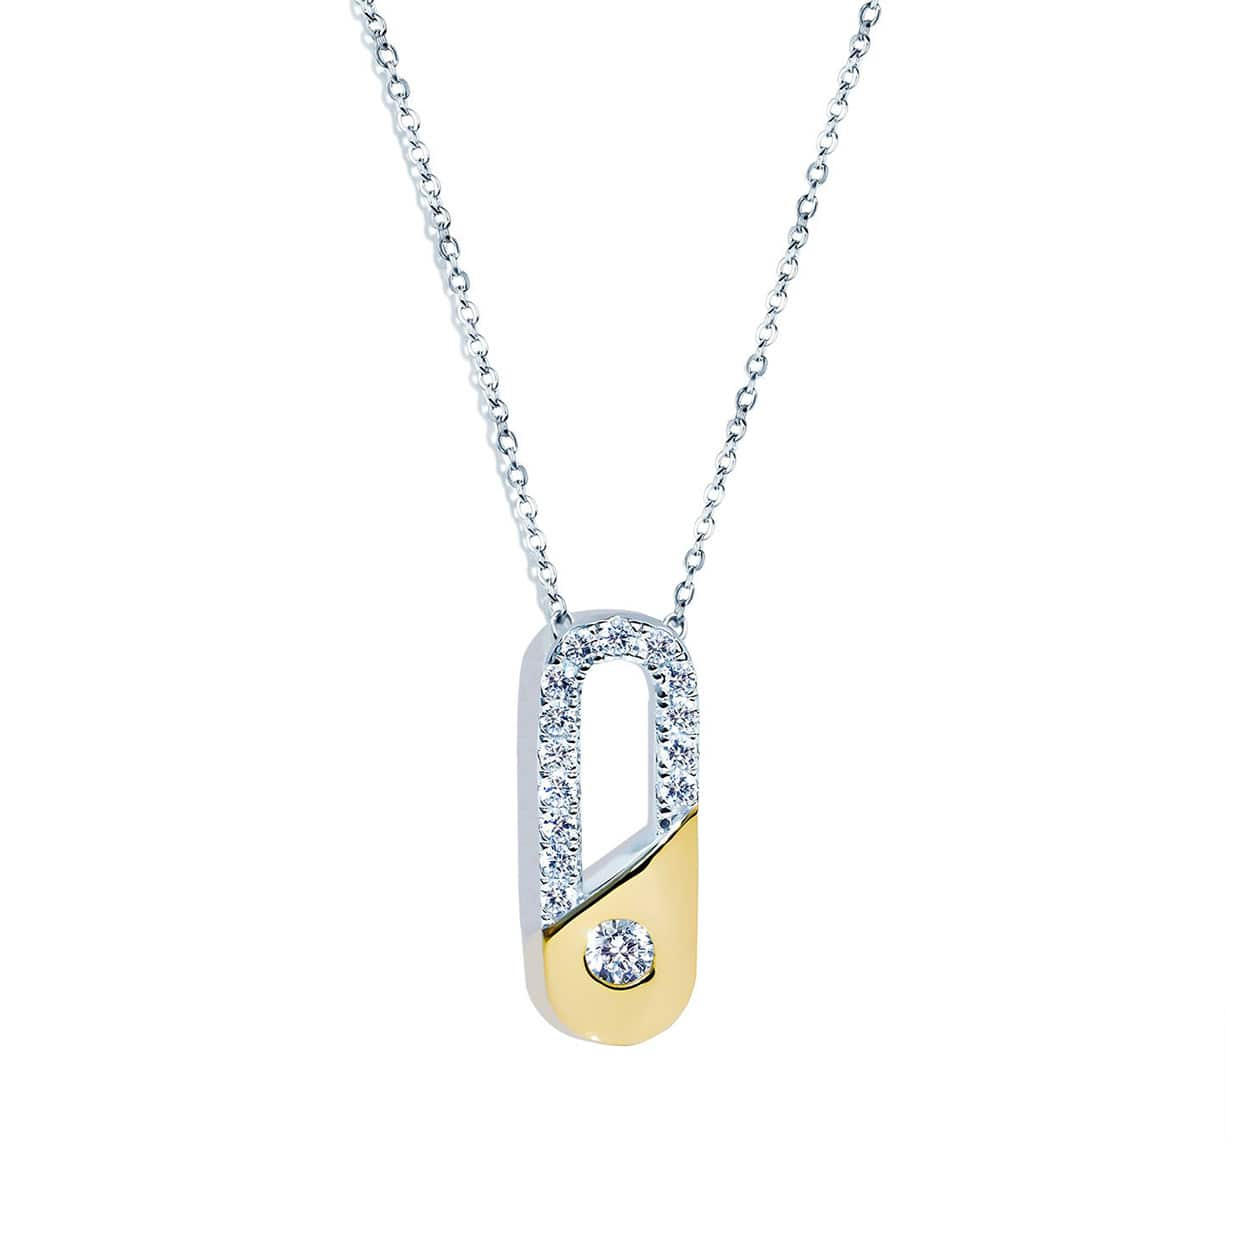 Abelstedt A Gold & Silver Clip Necklace